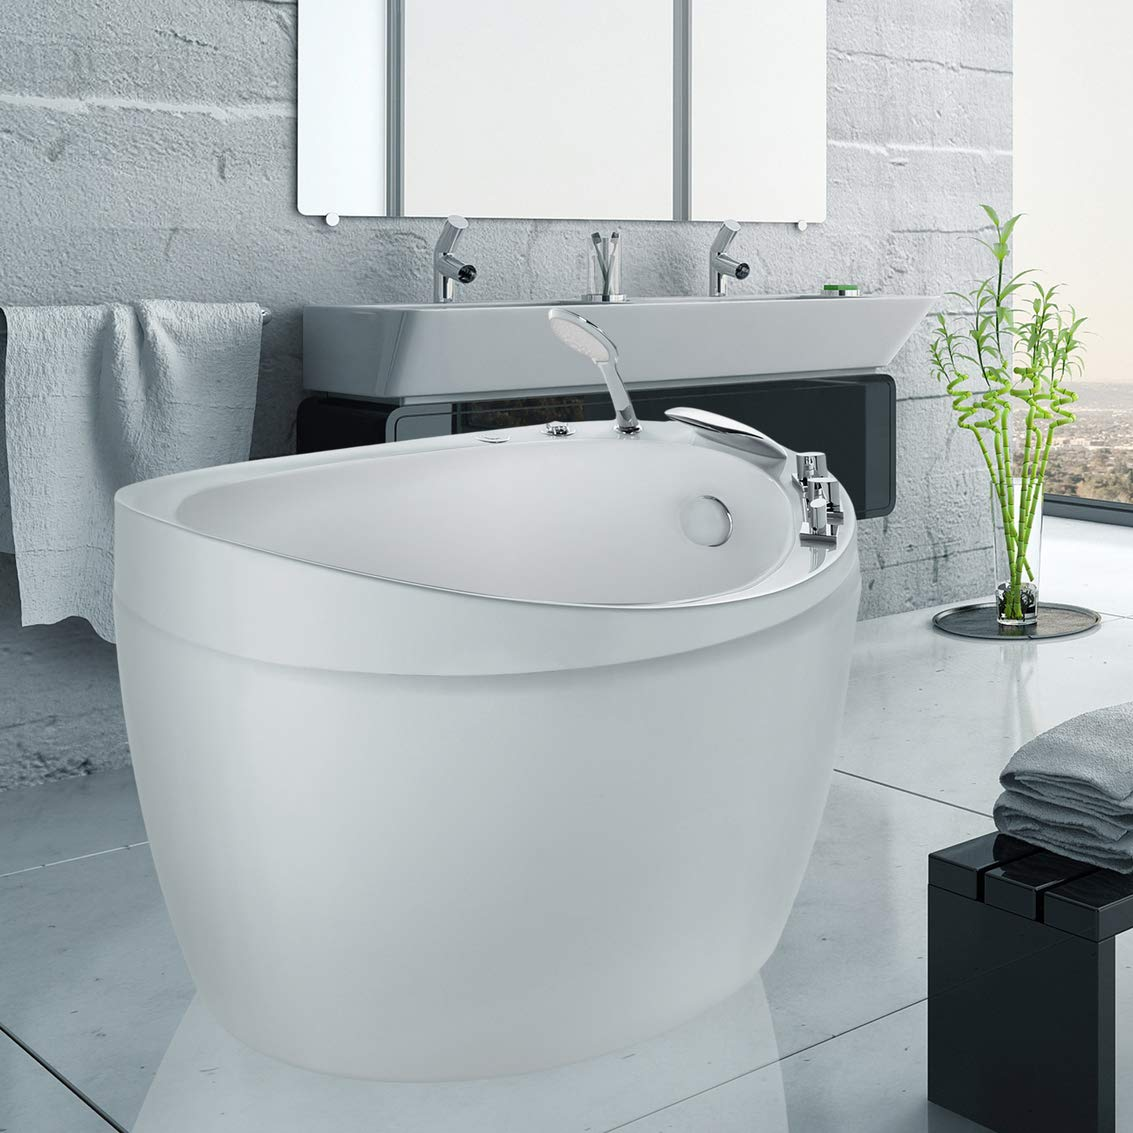 luxurious-japanese-bathtub-small-design-with-built-in-hand-shower-and-microbubble-jets